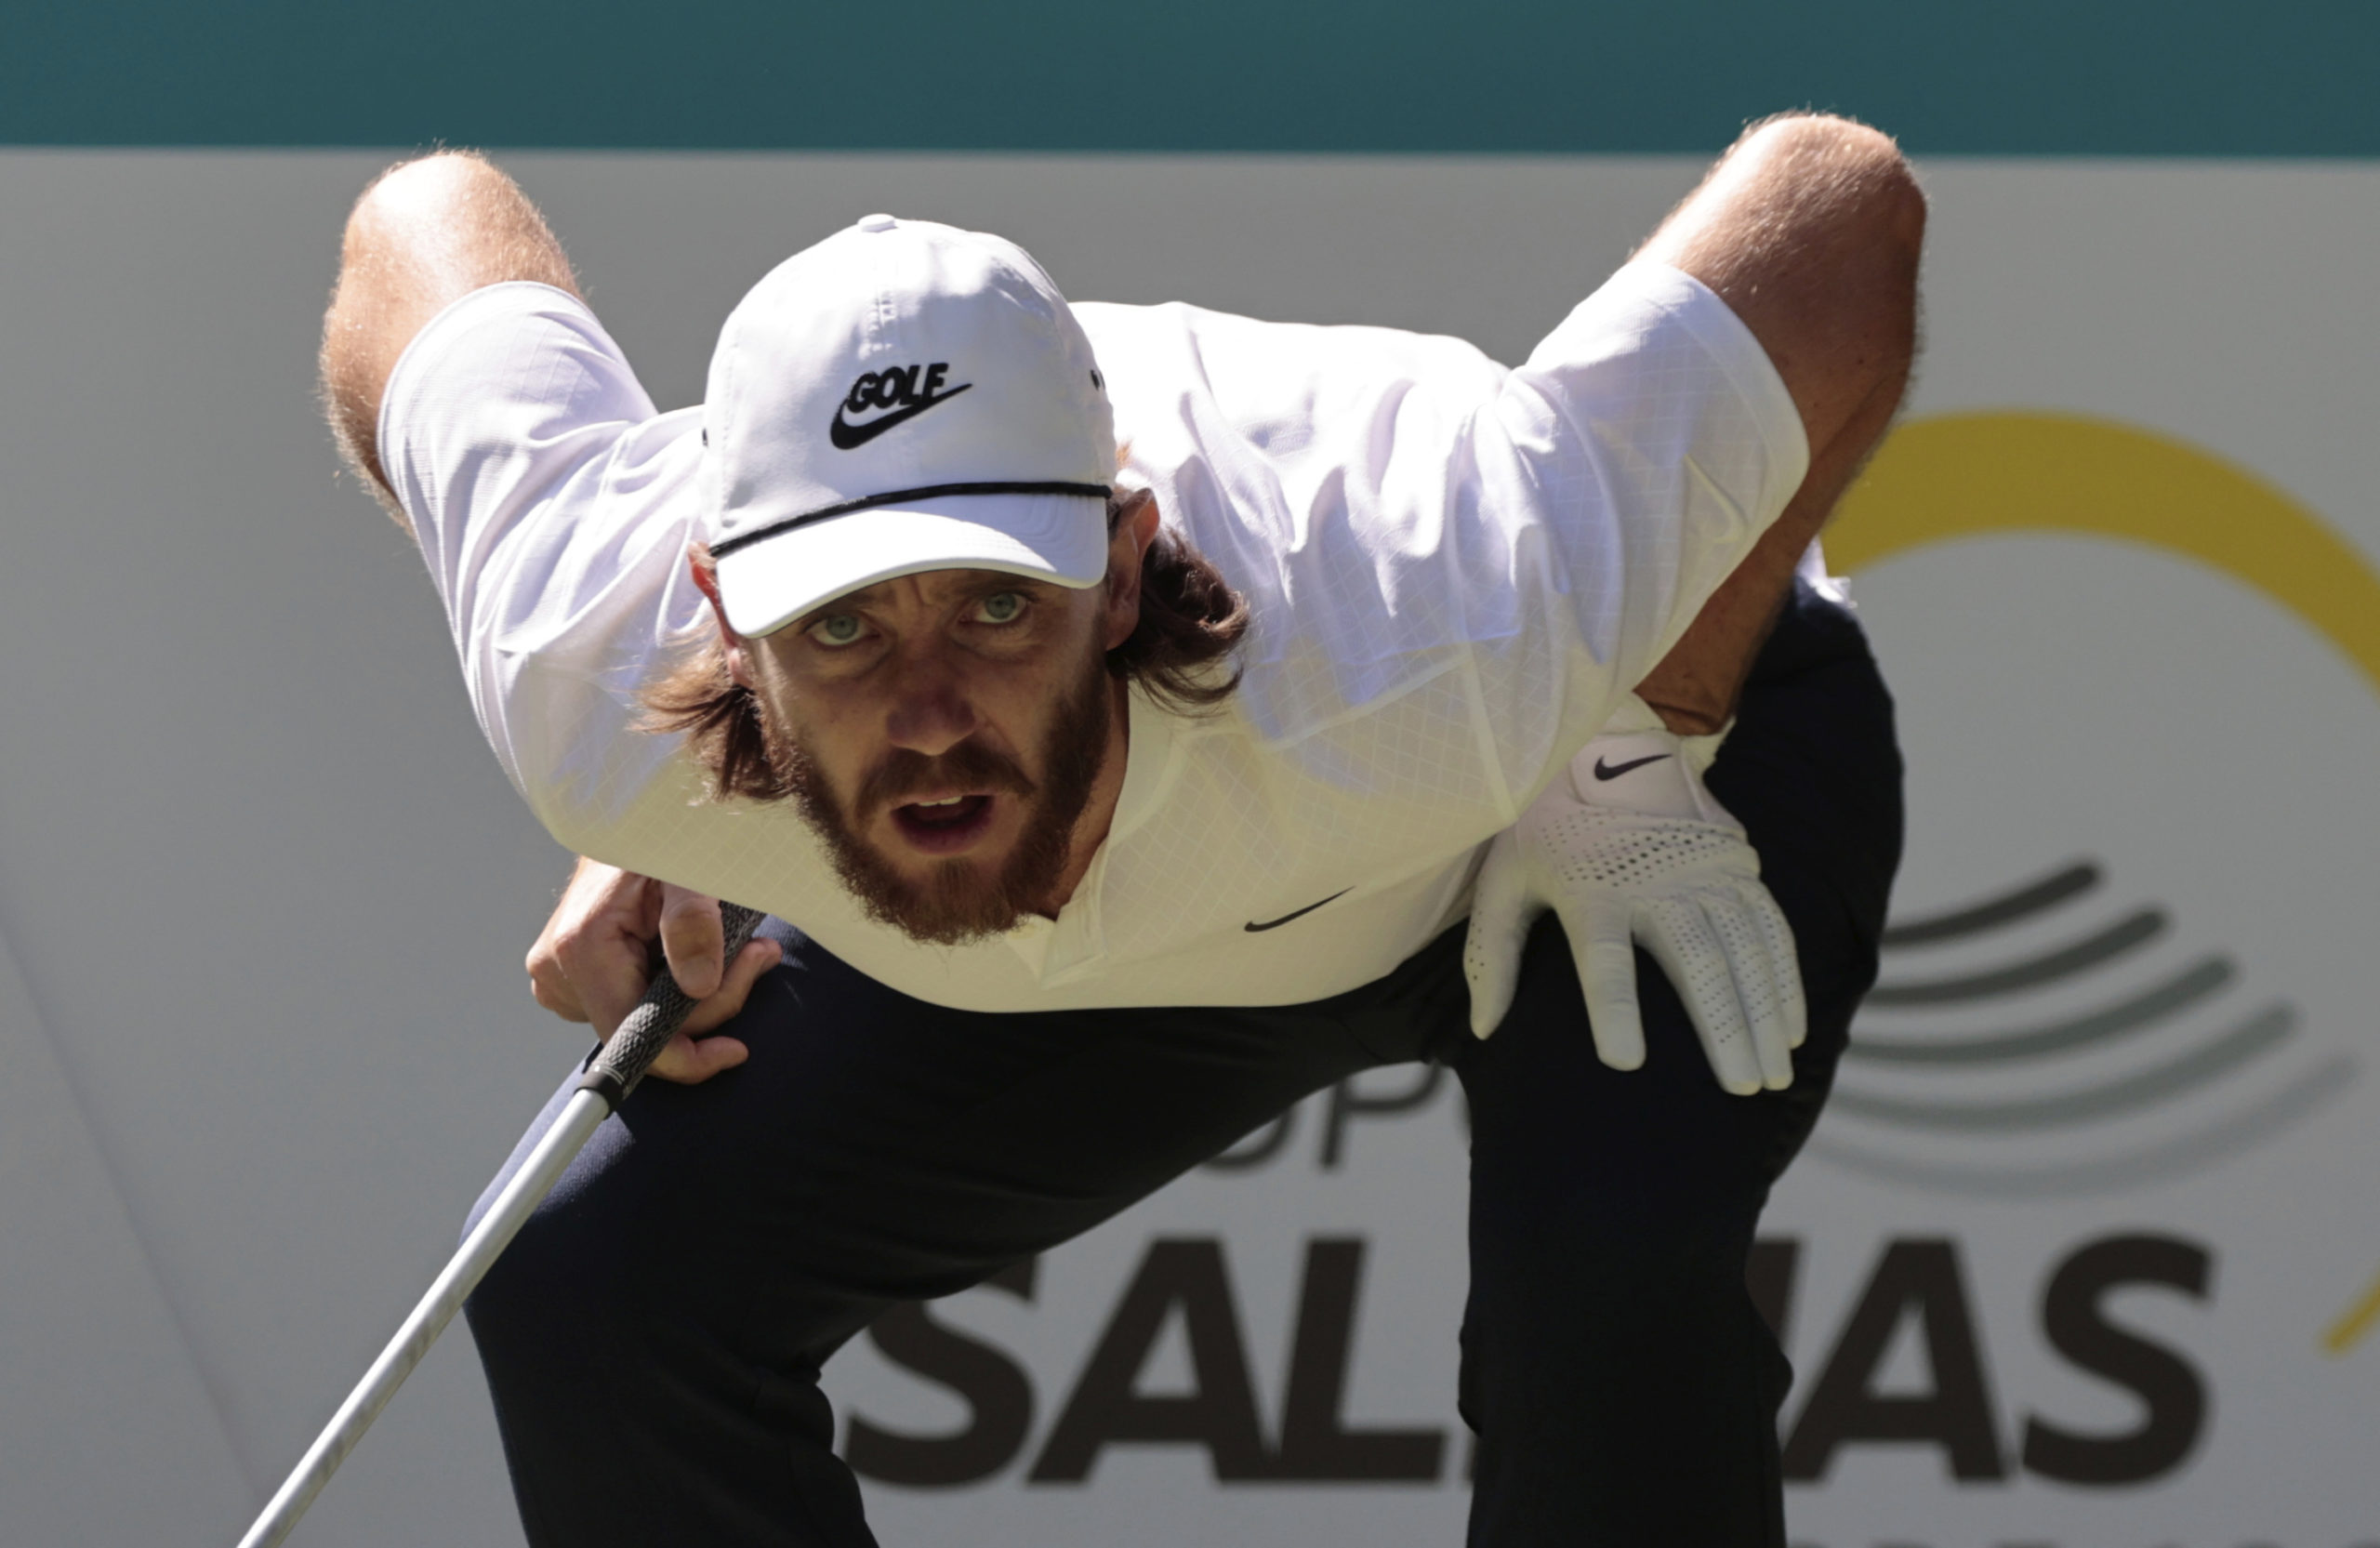 Tommy Fleetwood is still waiting for his first PGA Tour win.